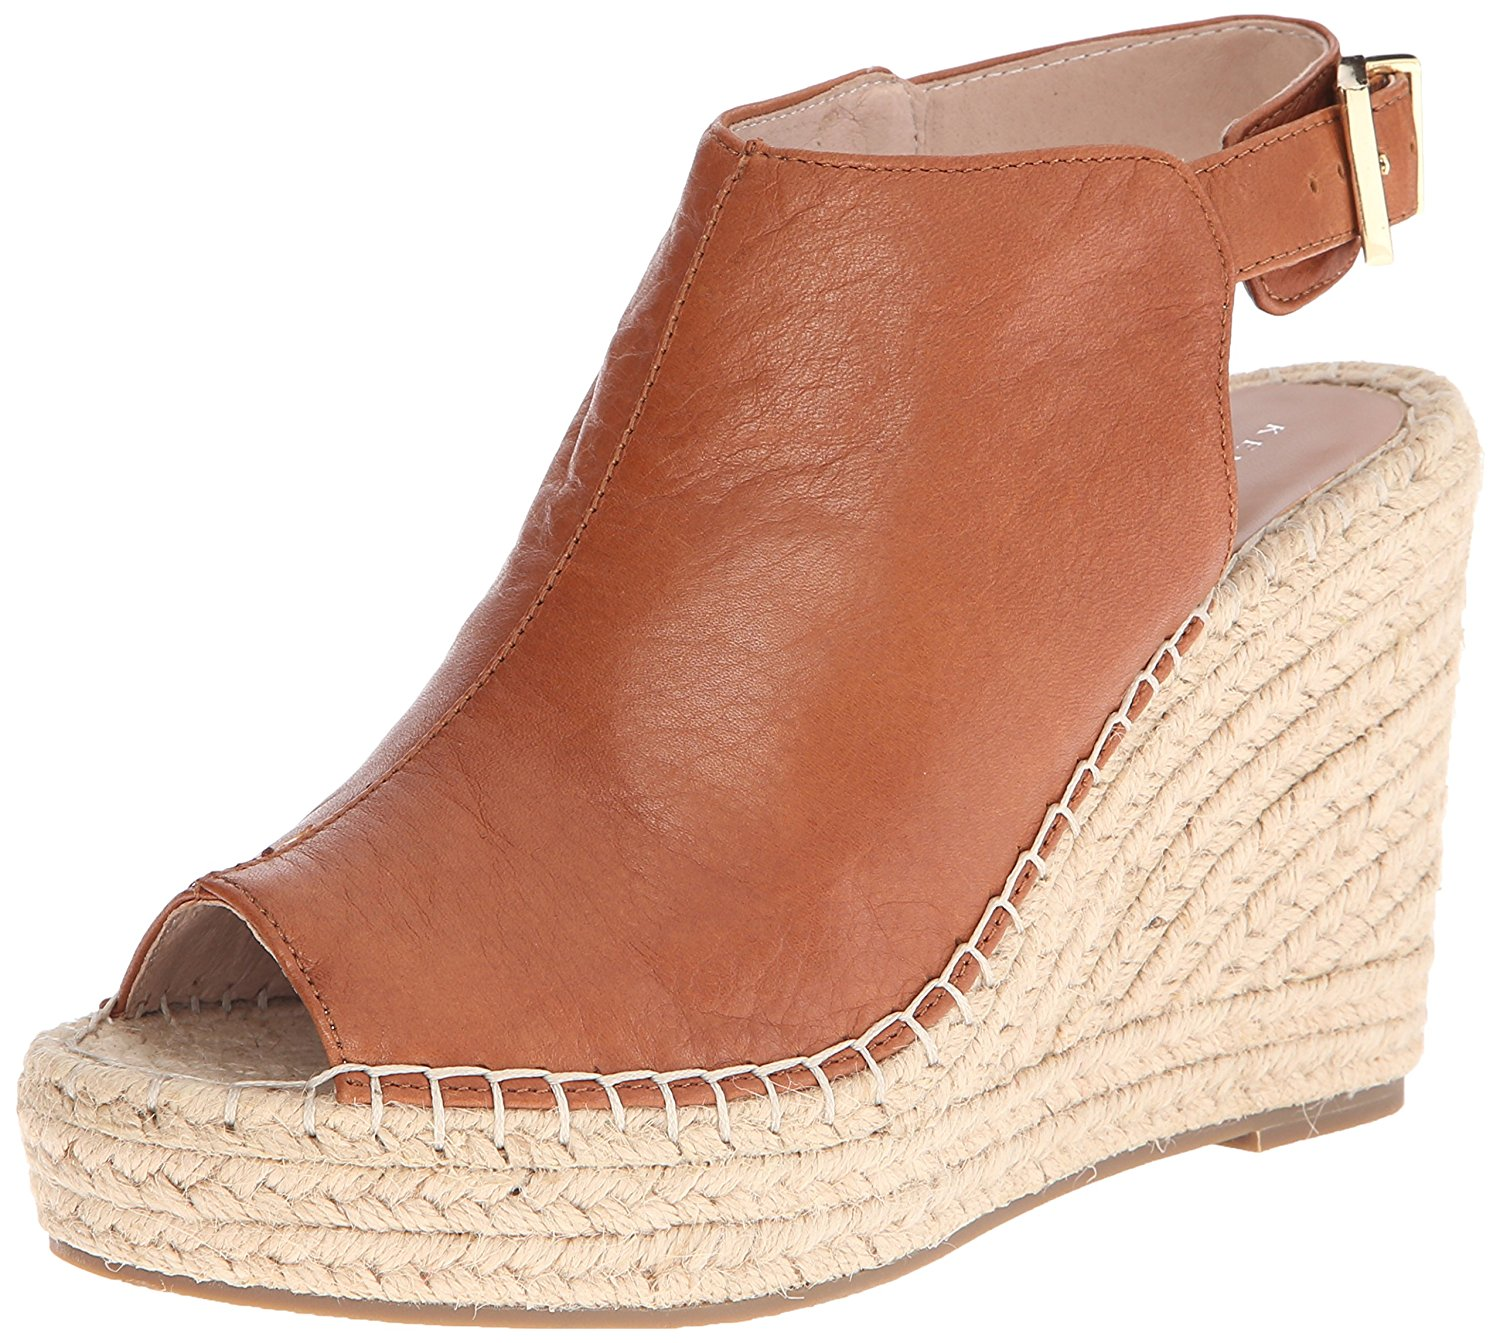 11e7f79ea0 Kenneth Cole New York Women's Olivia Espadrille Wedge Sandal | eBay